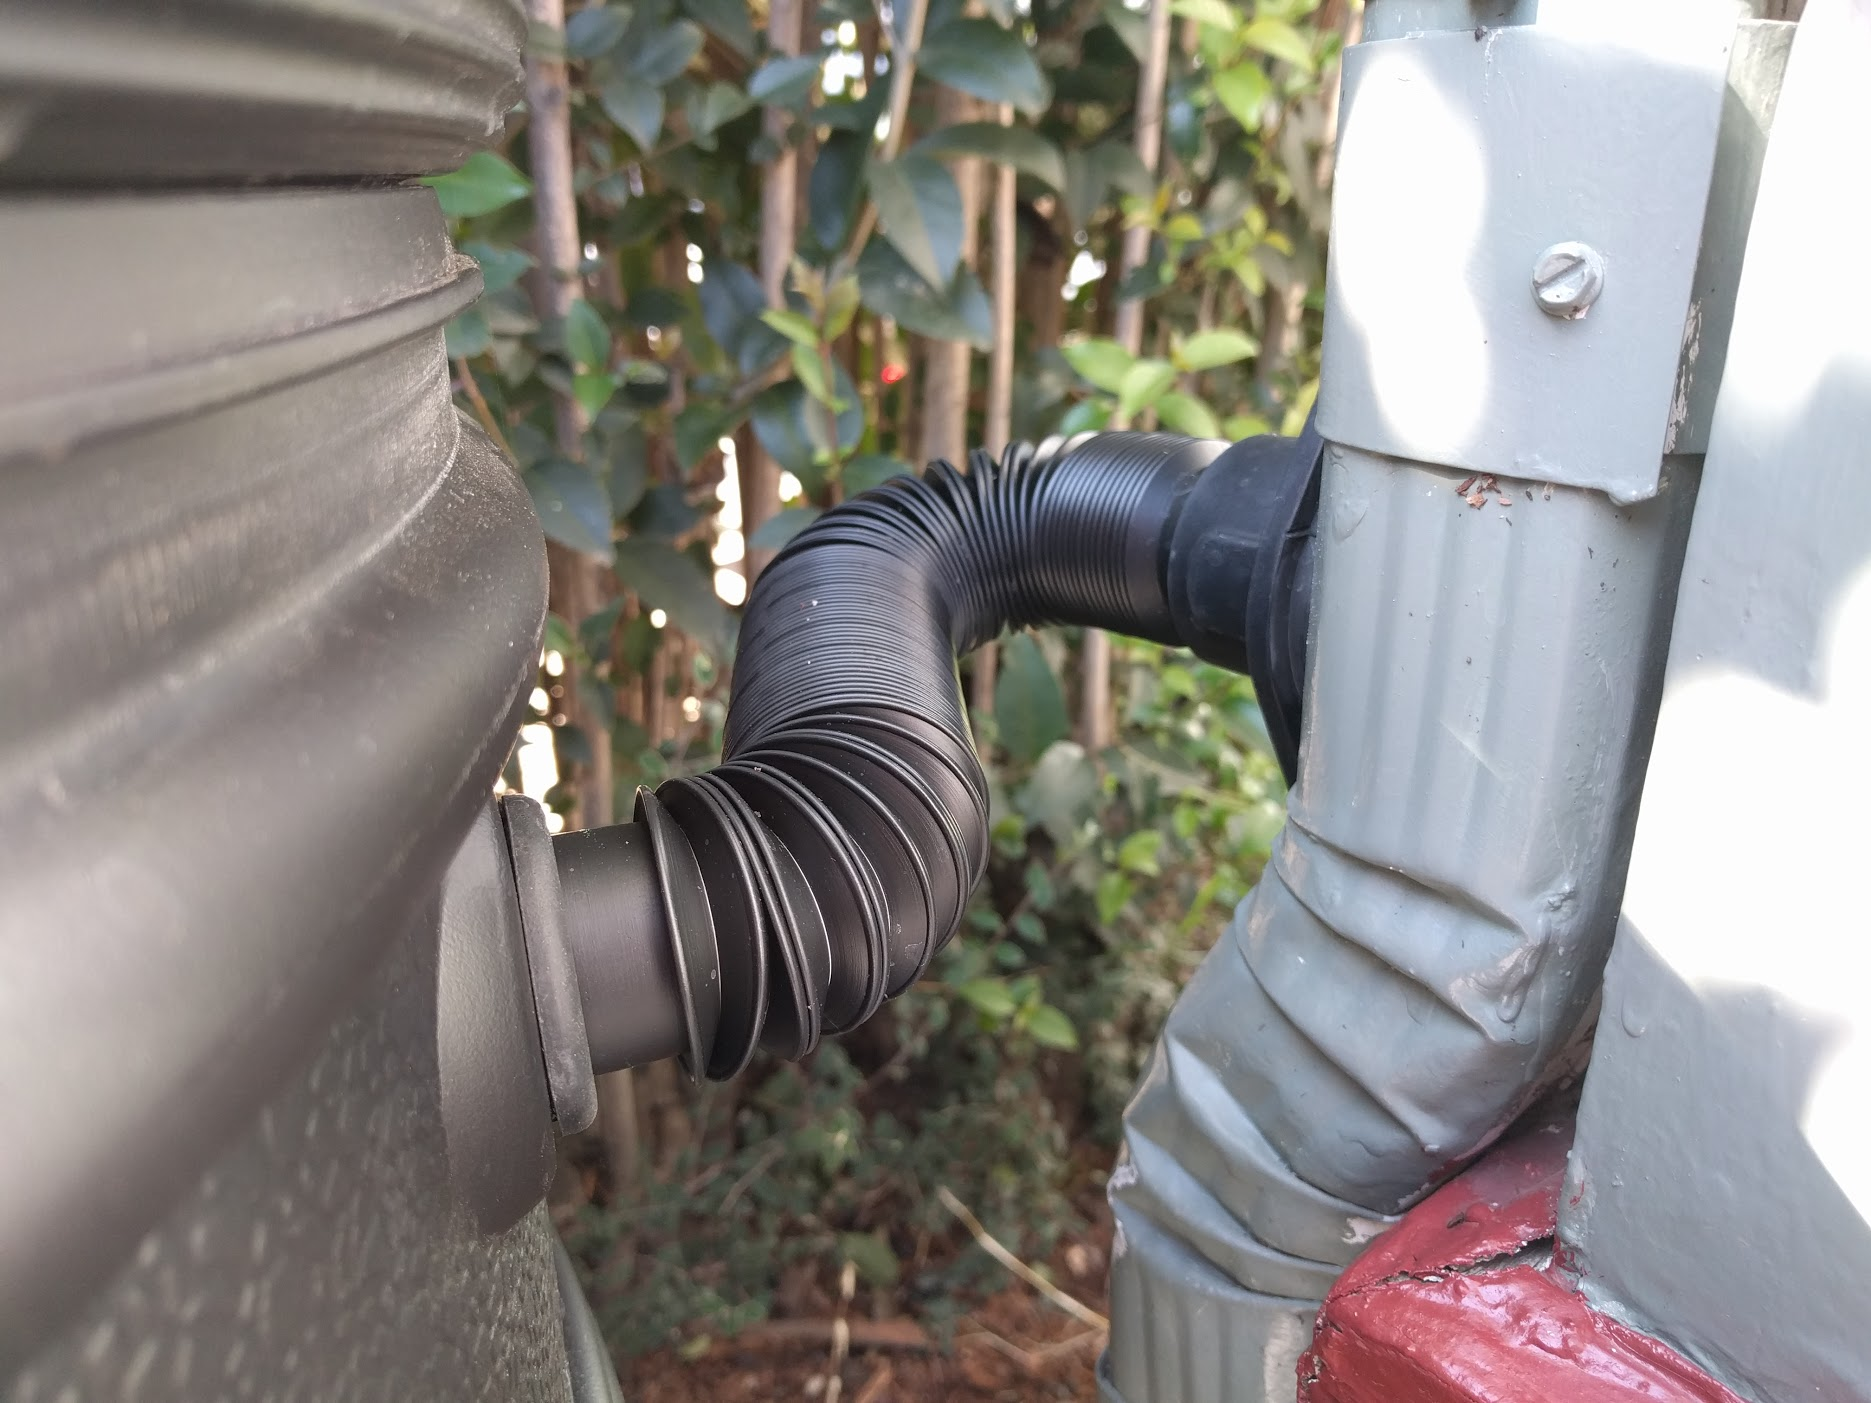 barrel downspout connection